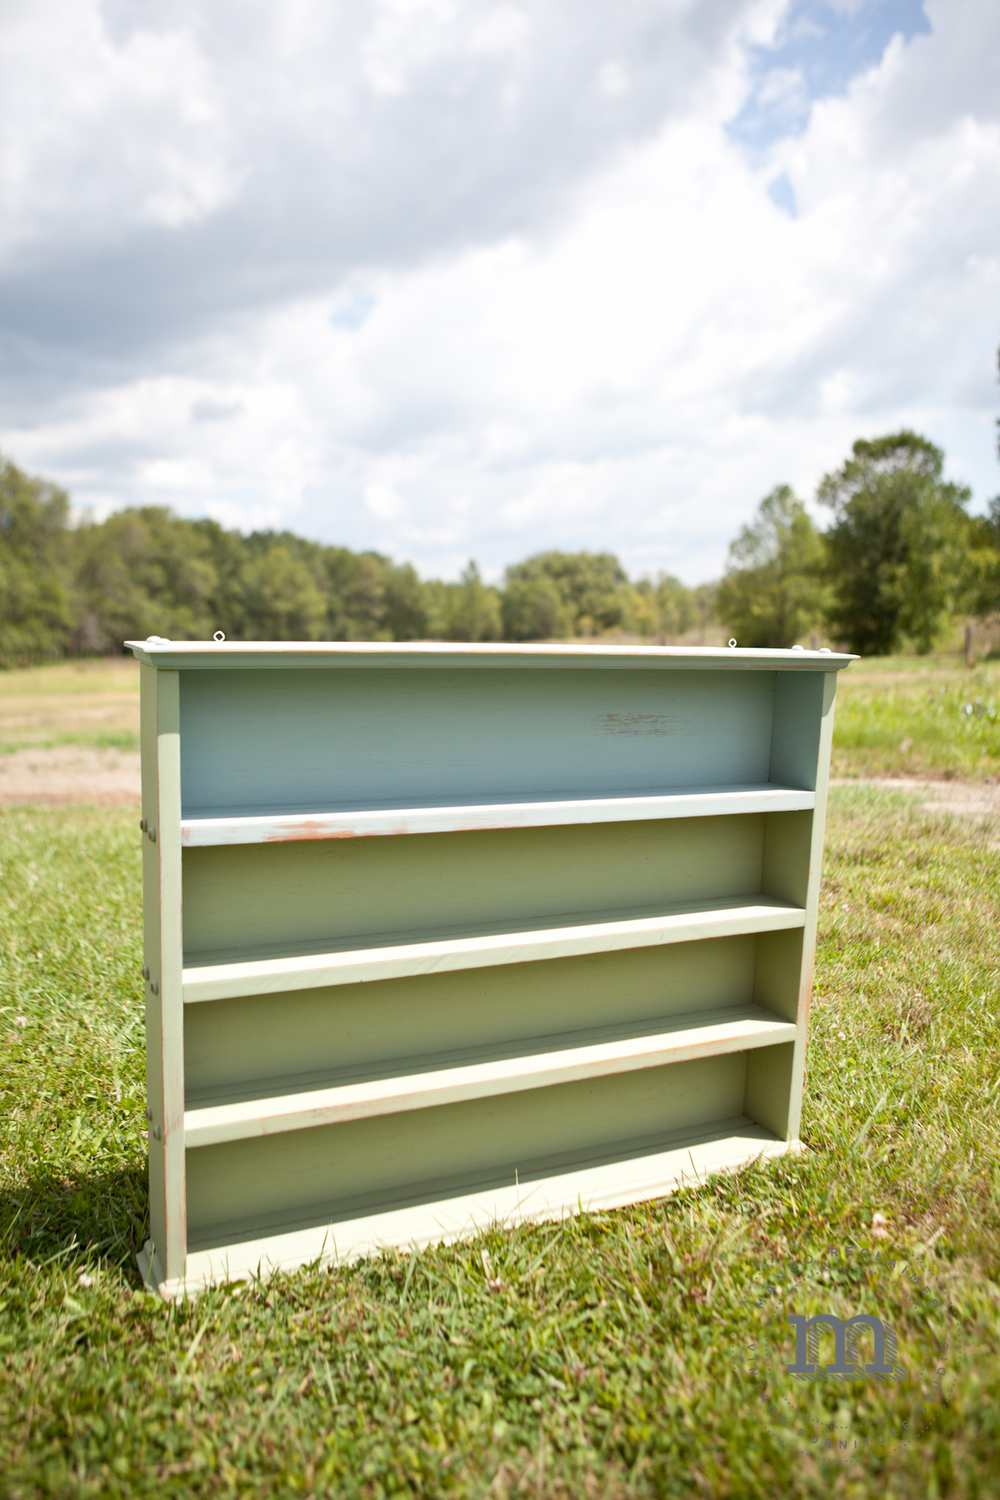 Inspired by the beauty of a grassy field and a blue sky - this shelf would look great in any home.